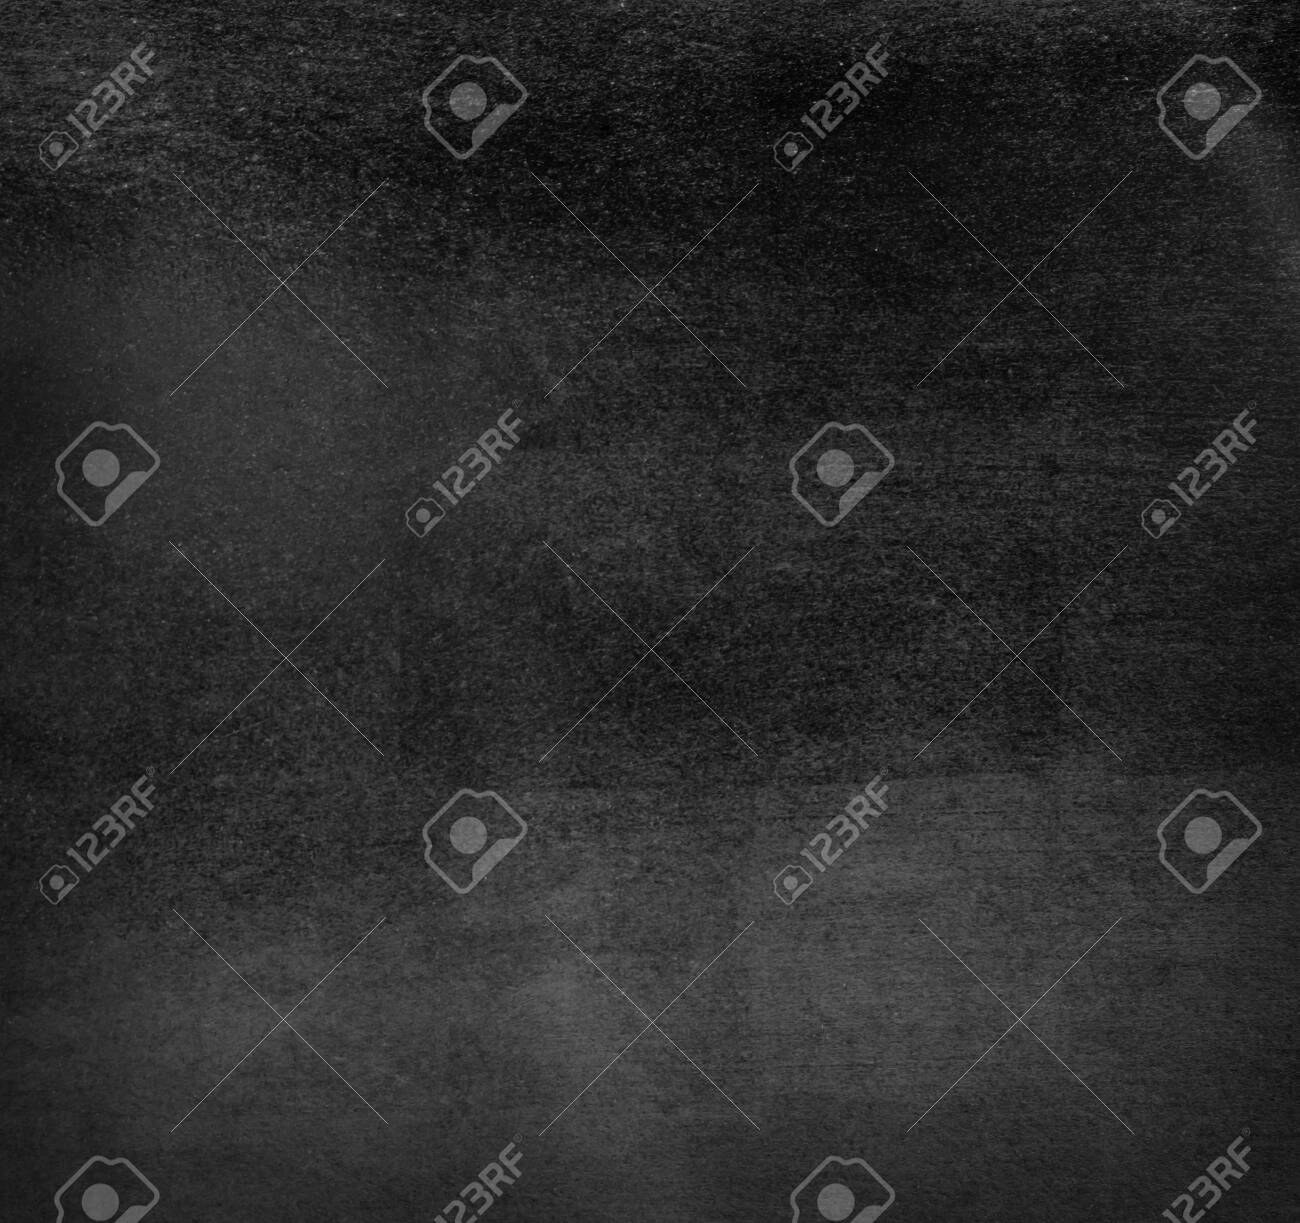 Black cement wall texture background - 128663190